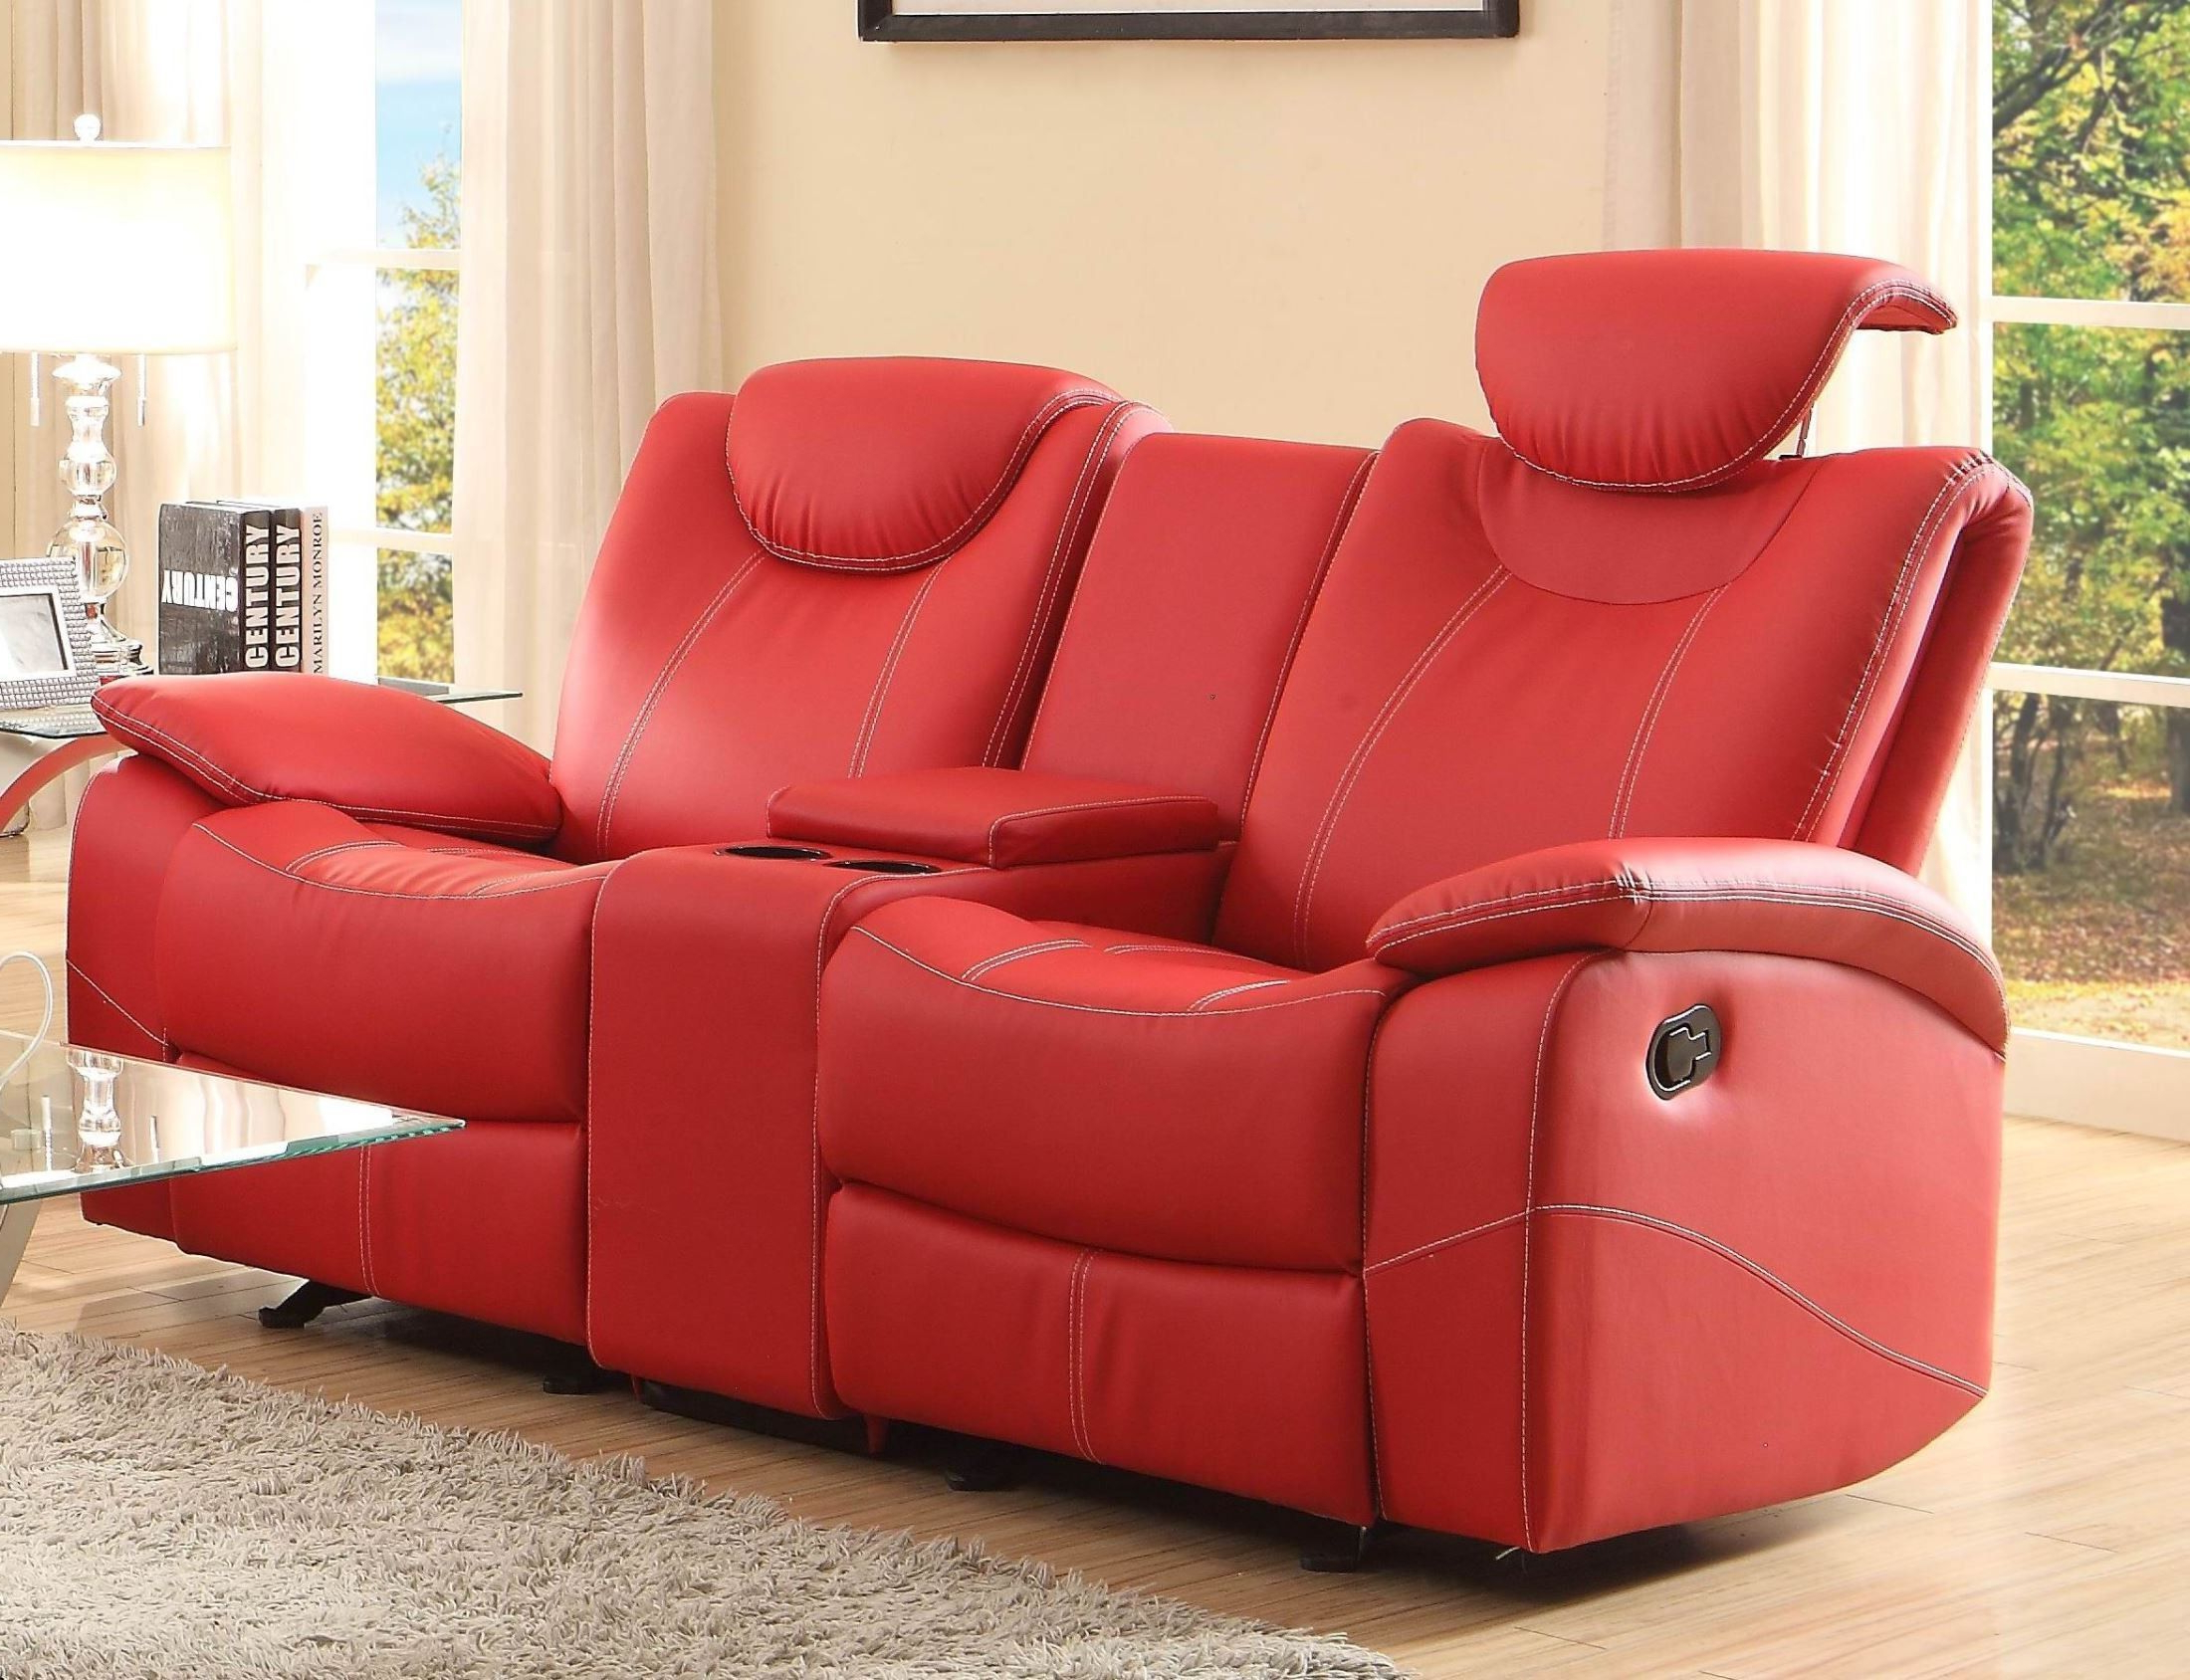 Favorite Talbot Red Double Glider Reclining Loveseat With Console Throughout Double Glider Loveseats (View 12 of 30)